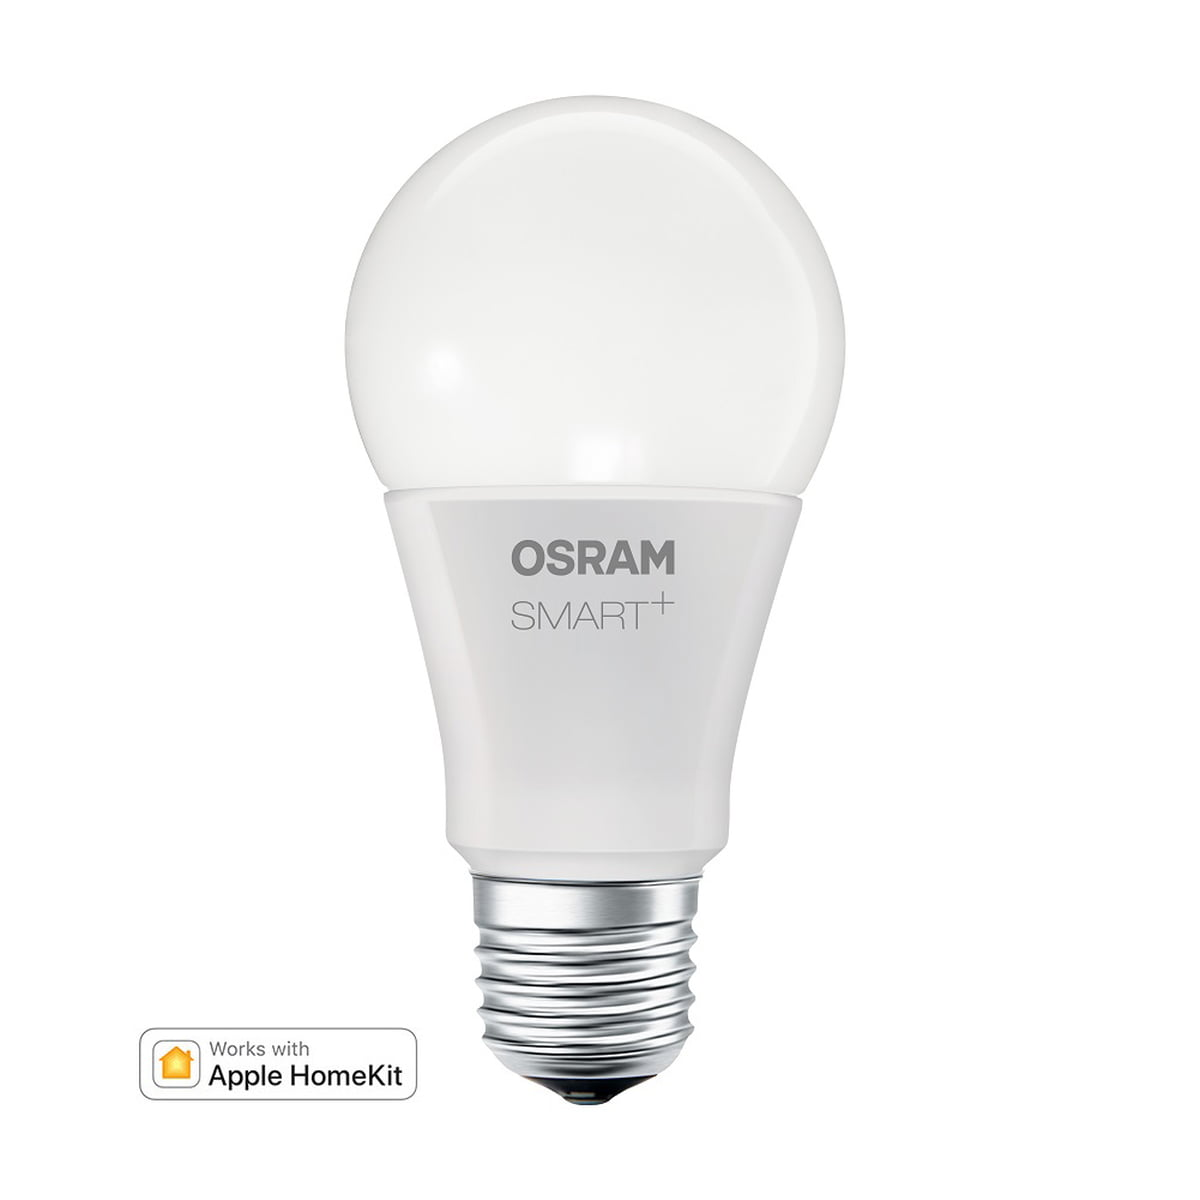 smart apple home kit by osram connox. Black Bedroom Furniture Sets. Home Design Ideas